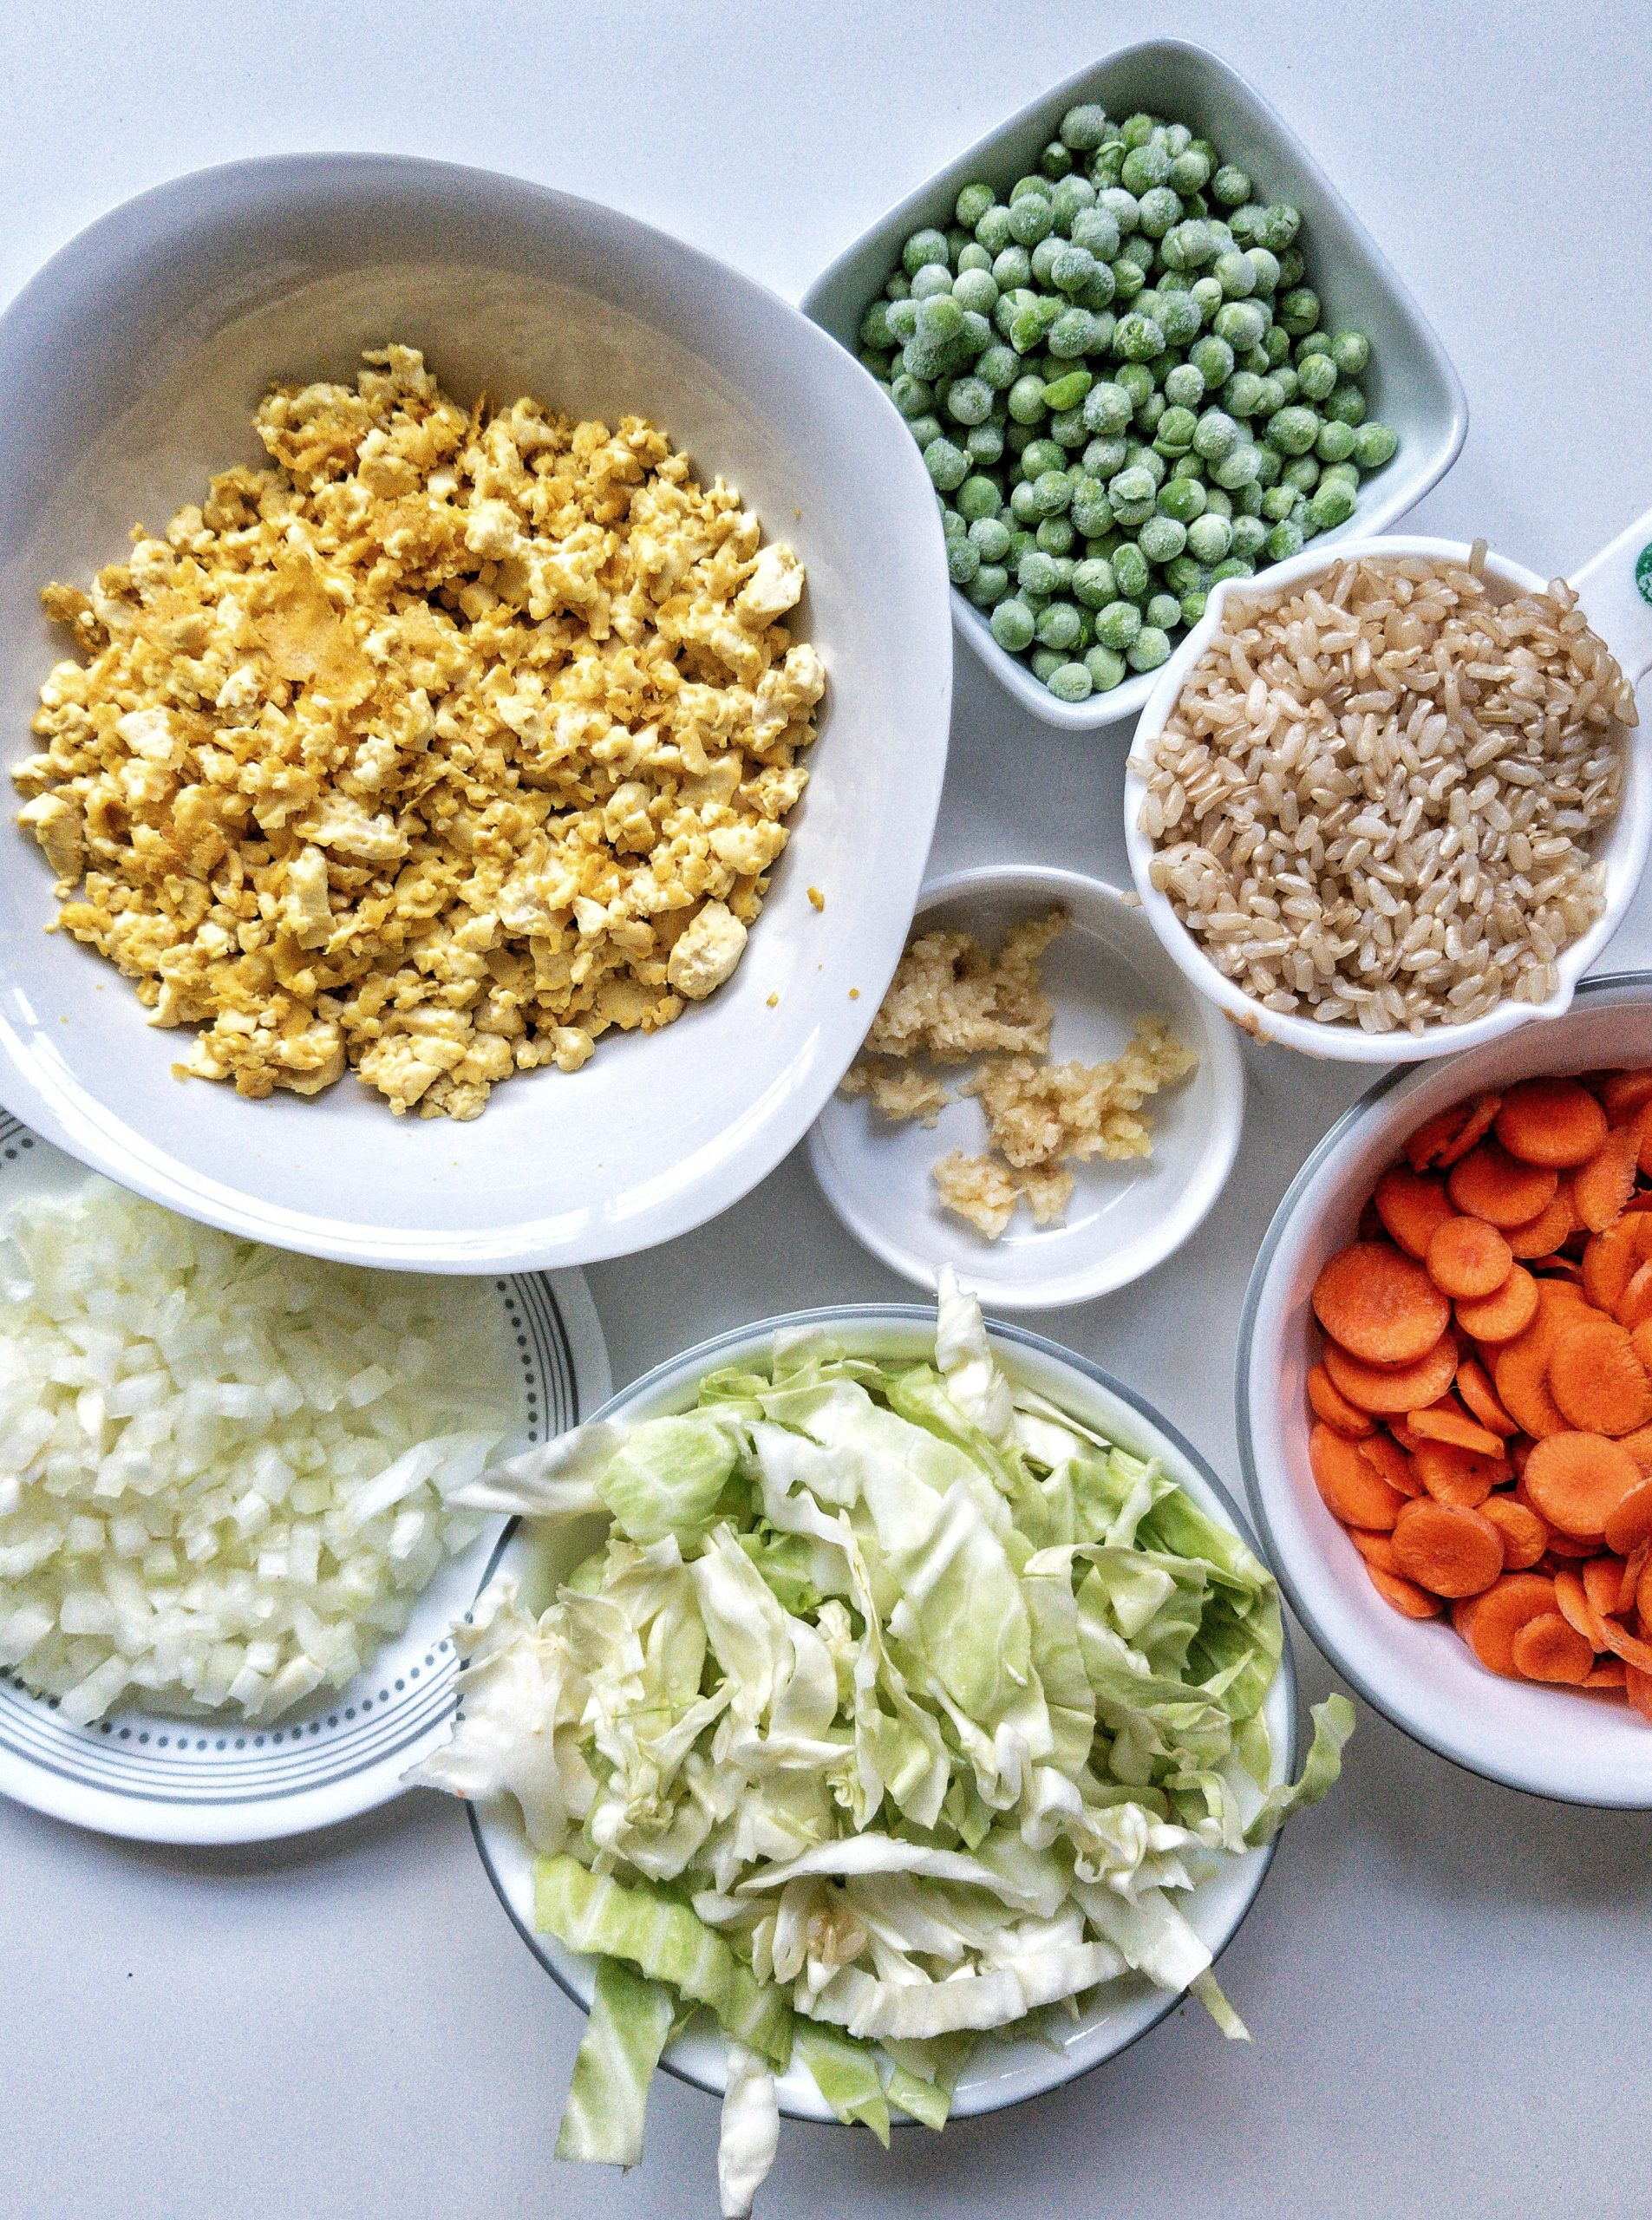 Oil-free, vegan fried rice ingredients including tofu scramble, chopped onion, cabbage, carrots, crushed garlic, frozen peas, and cooked brown rice